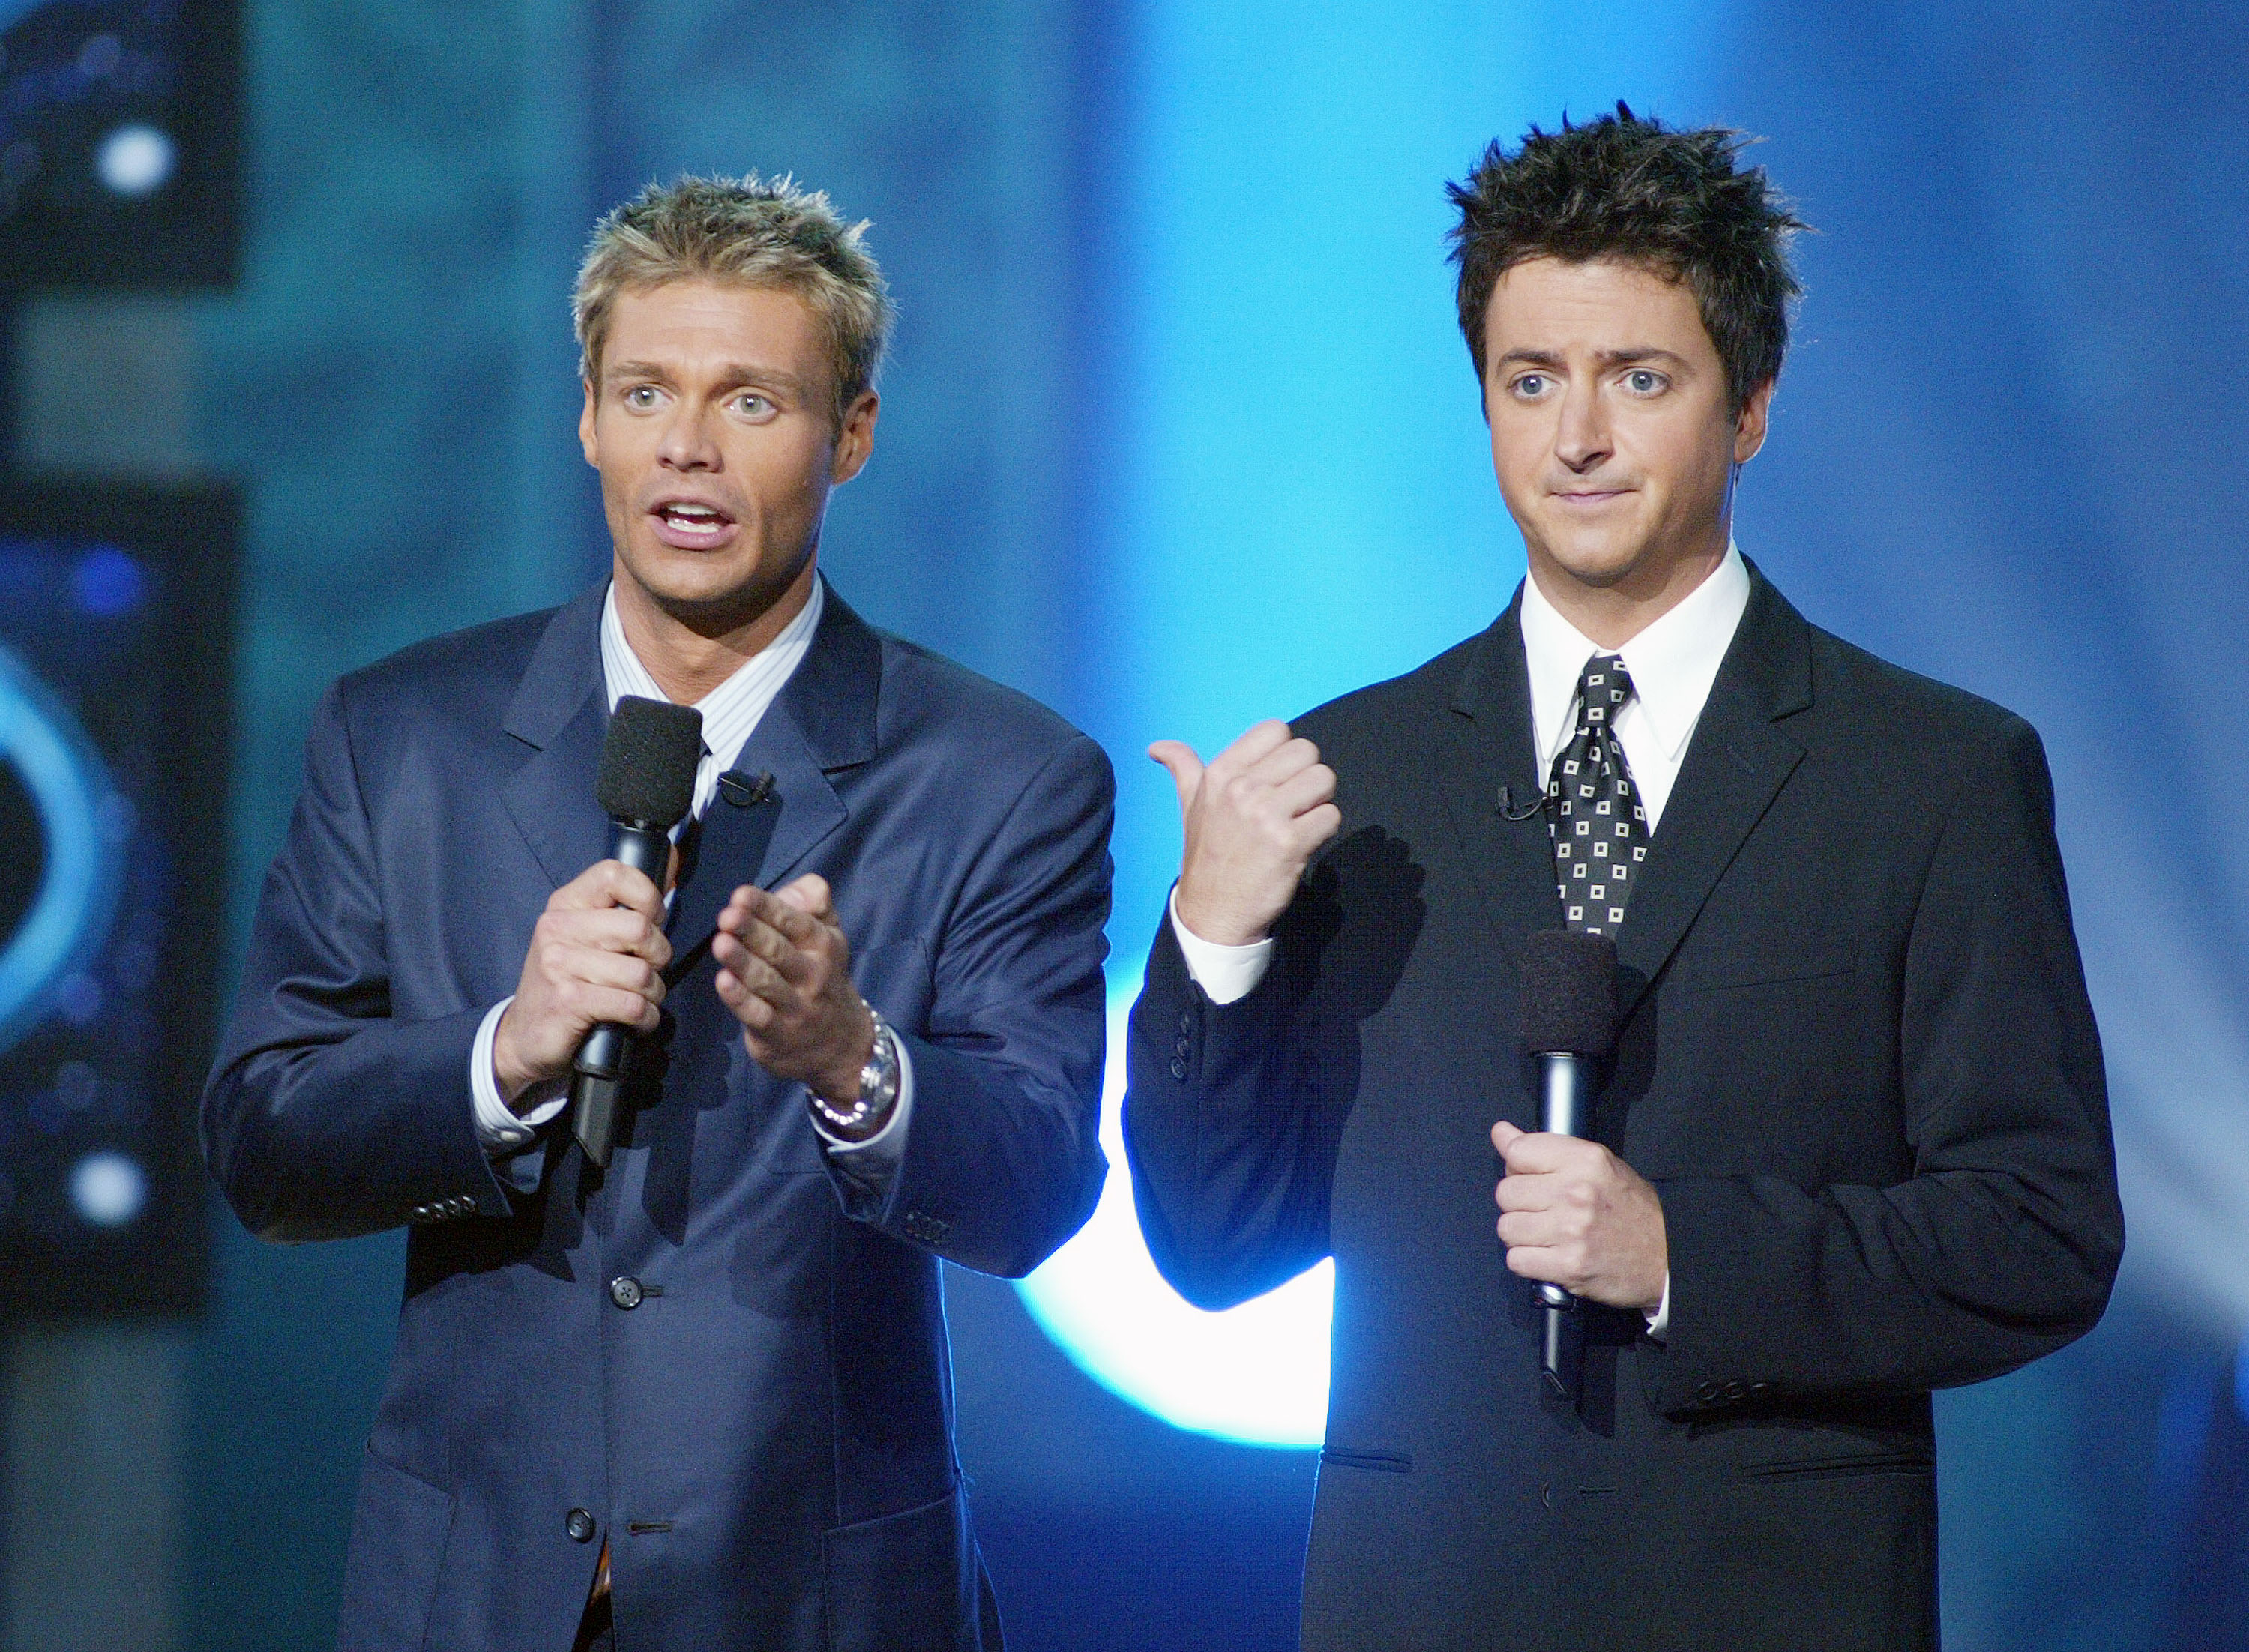 Ryan Seacrest and Brian Dunkleman at FOX-TV's 'American Idol' finale at the Kodak Theatre in Hollywood, Ca. Wednesday, Sept. 4, 2002. (Kevin Winter/ImageDirect)